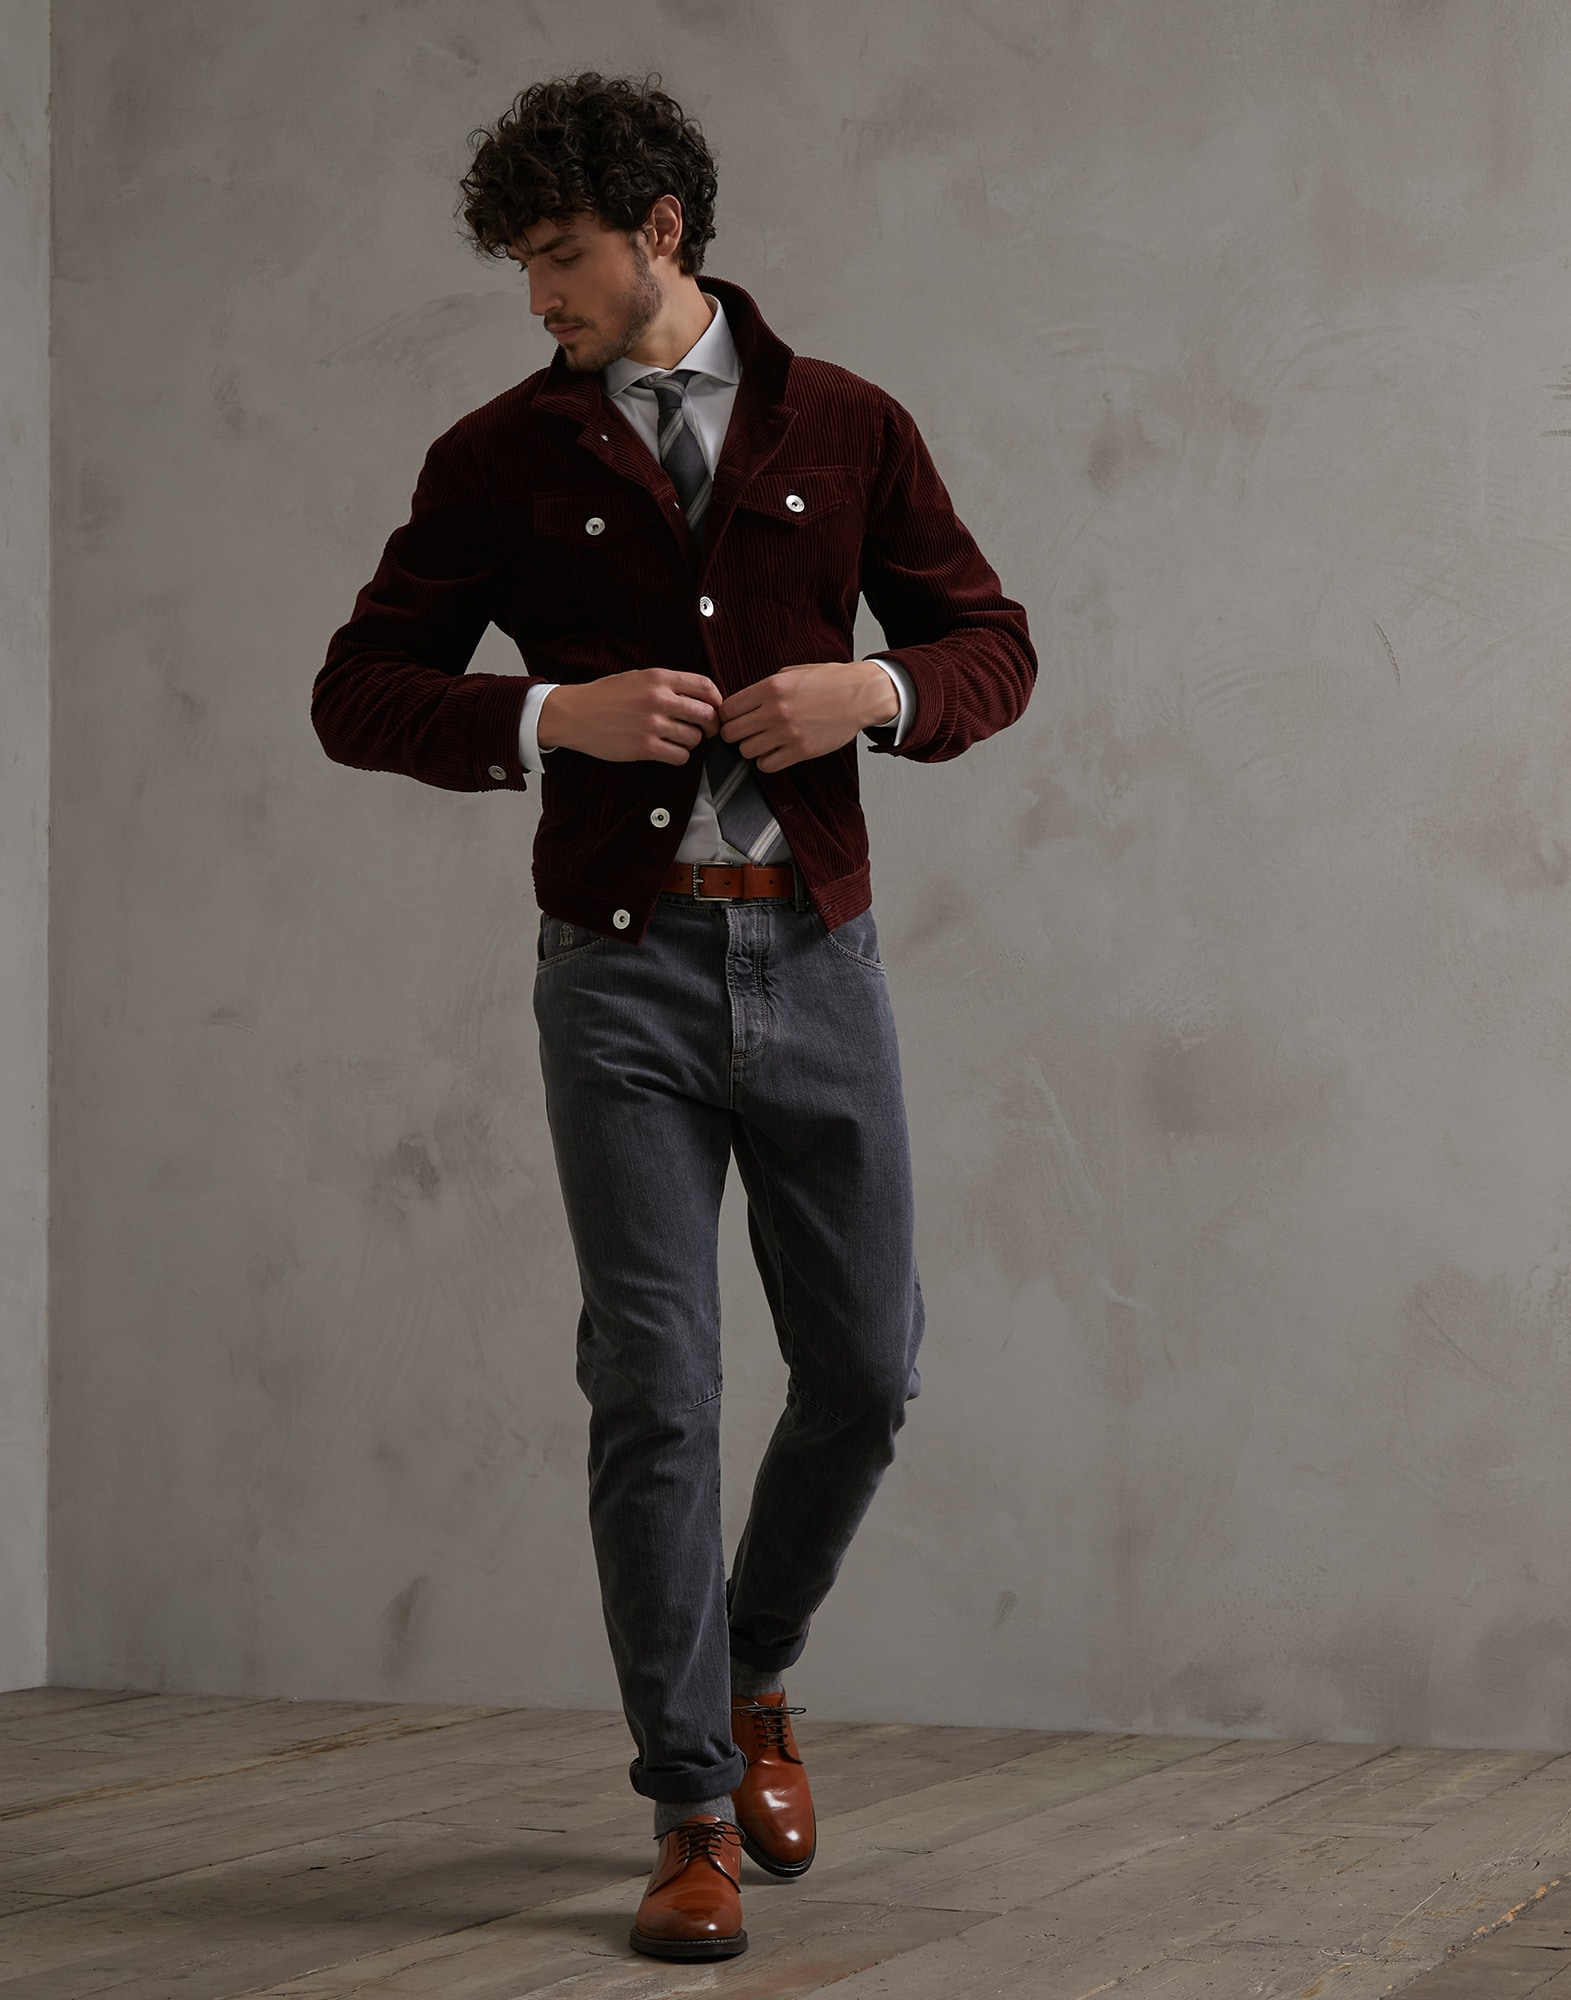 French Collar Shirt - Full look